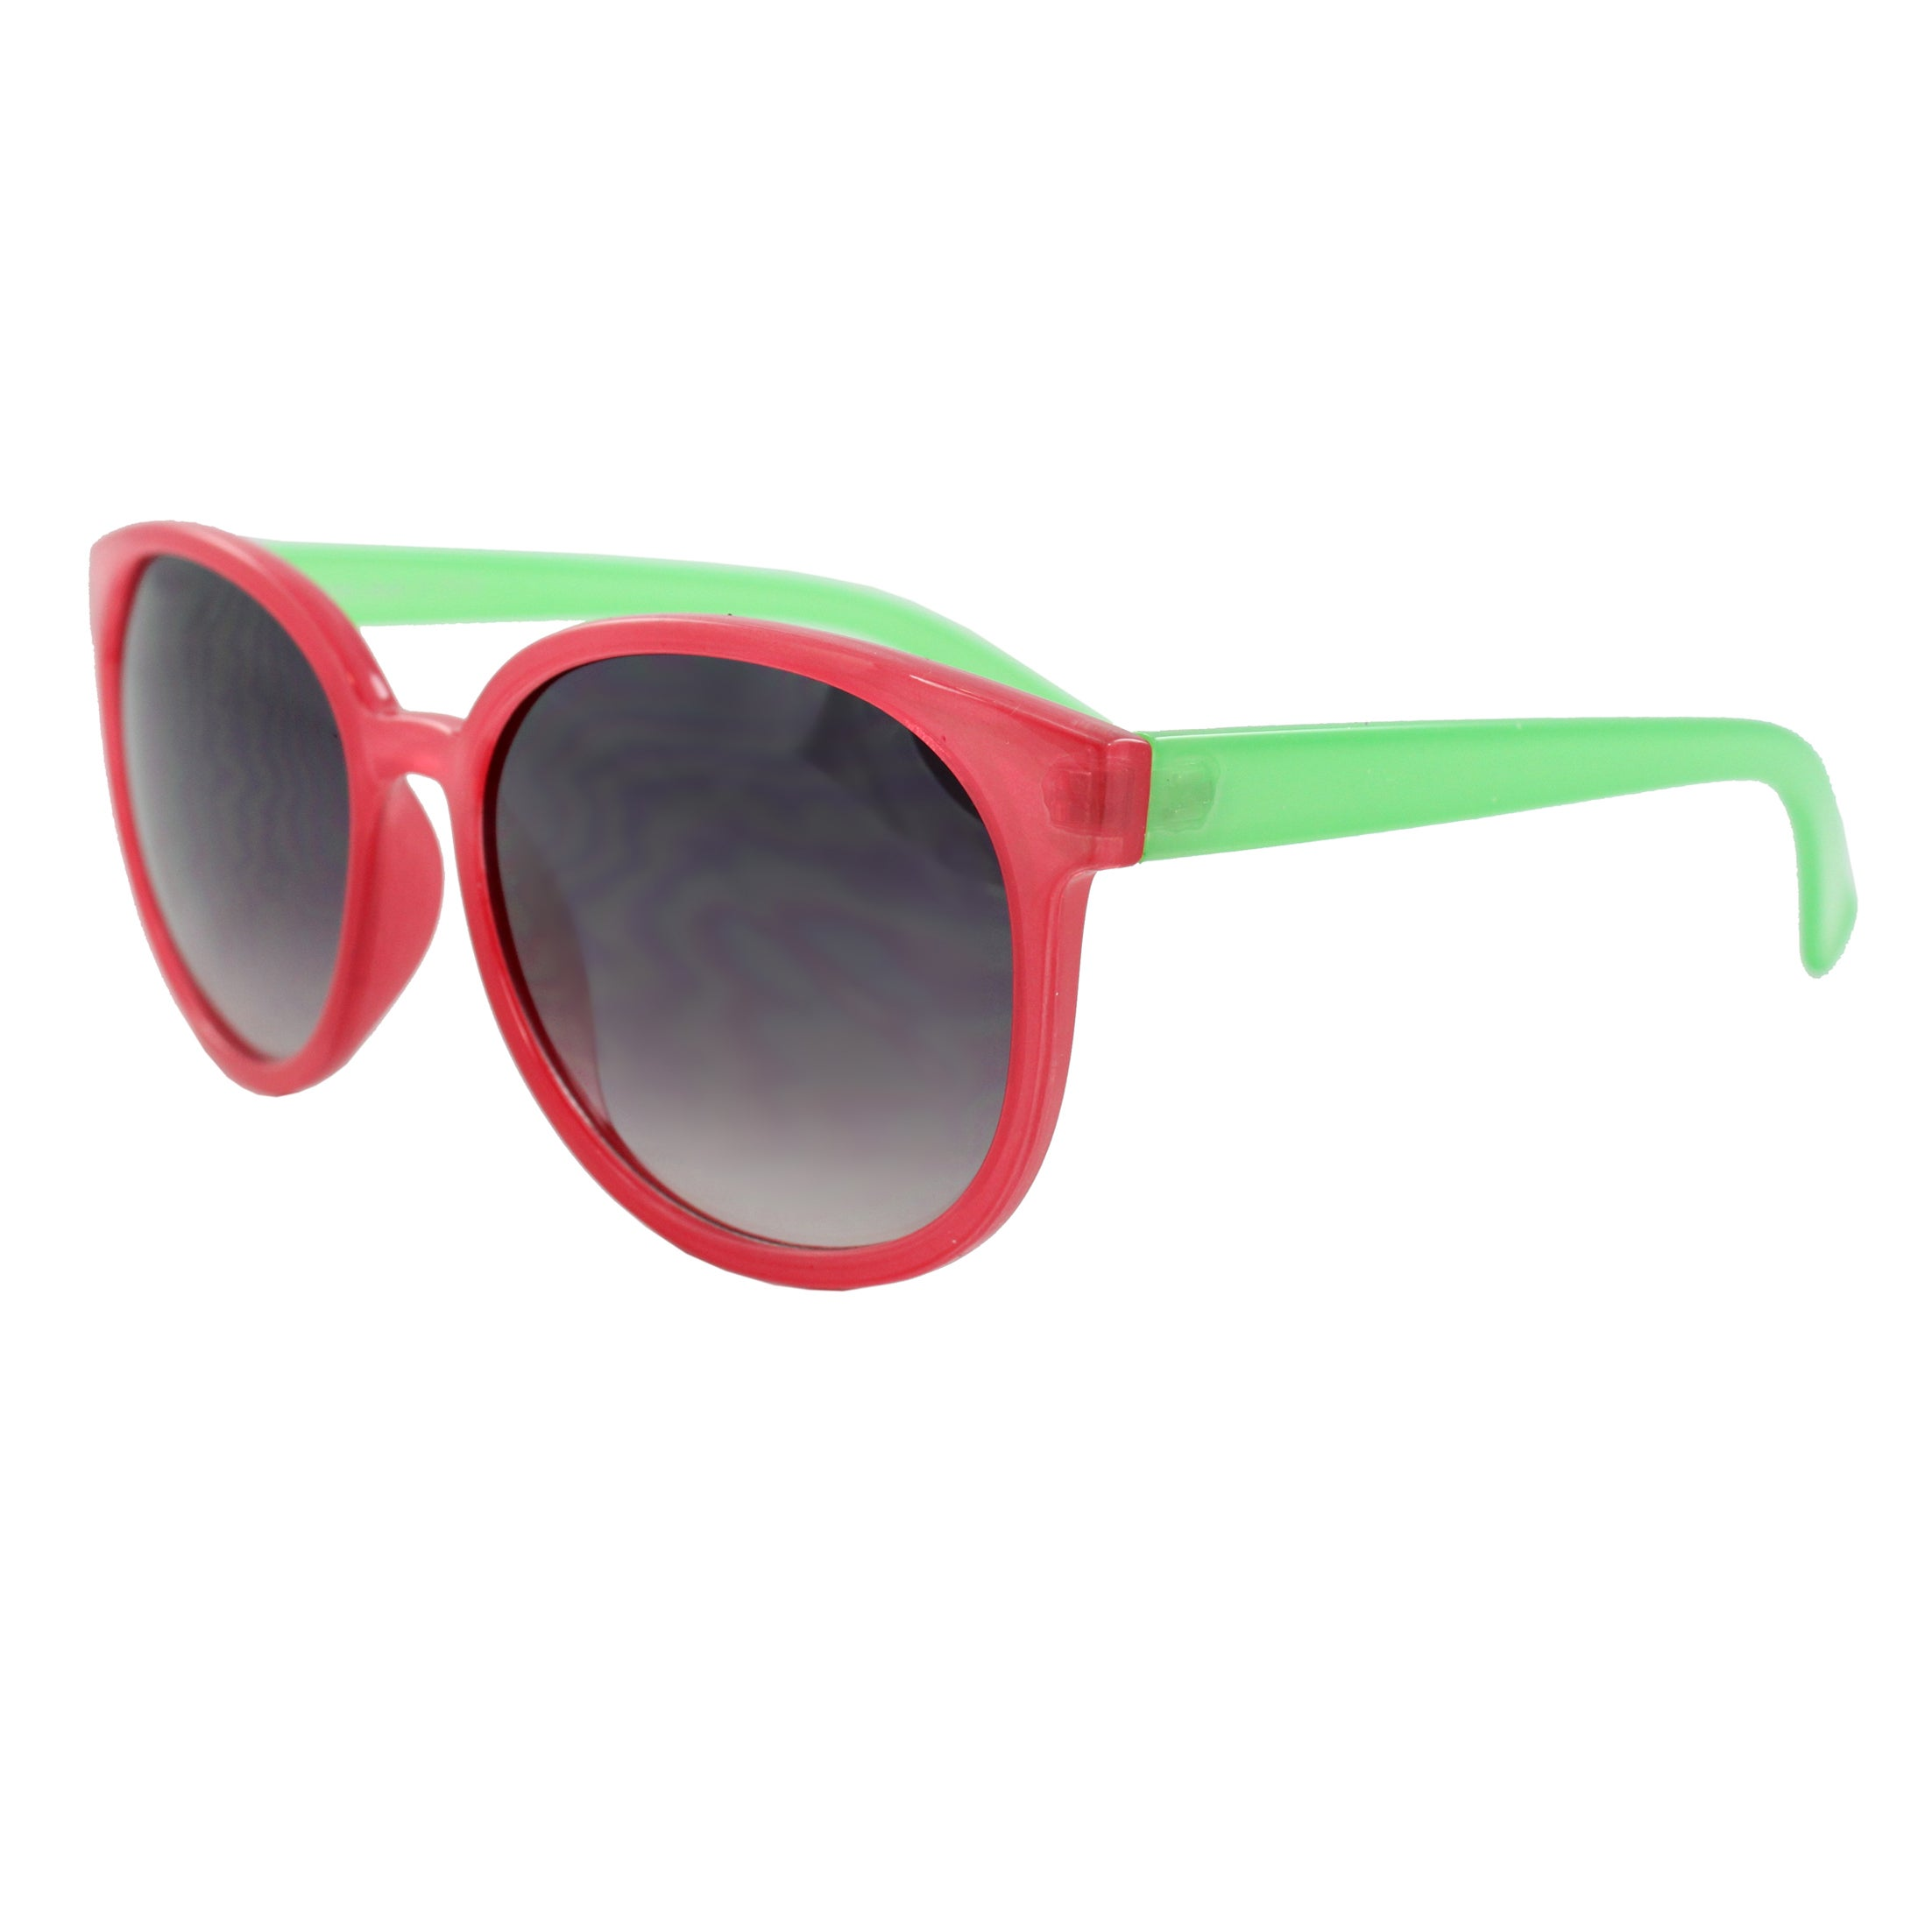 Women's Pink/ Green Oval Fashion Sunglasses